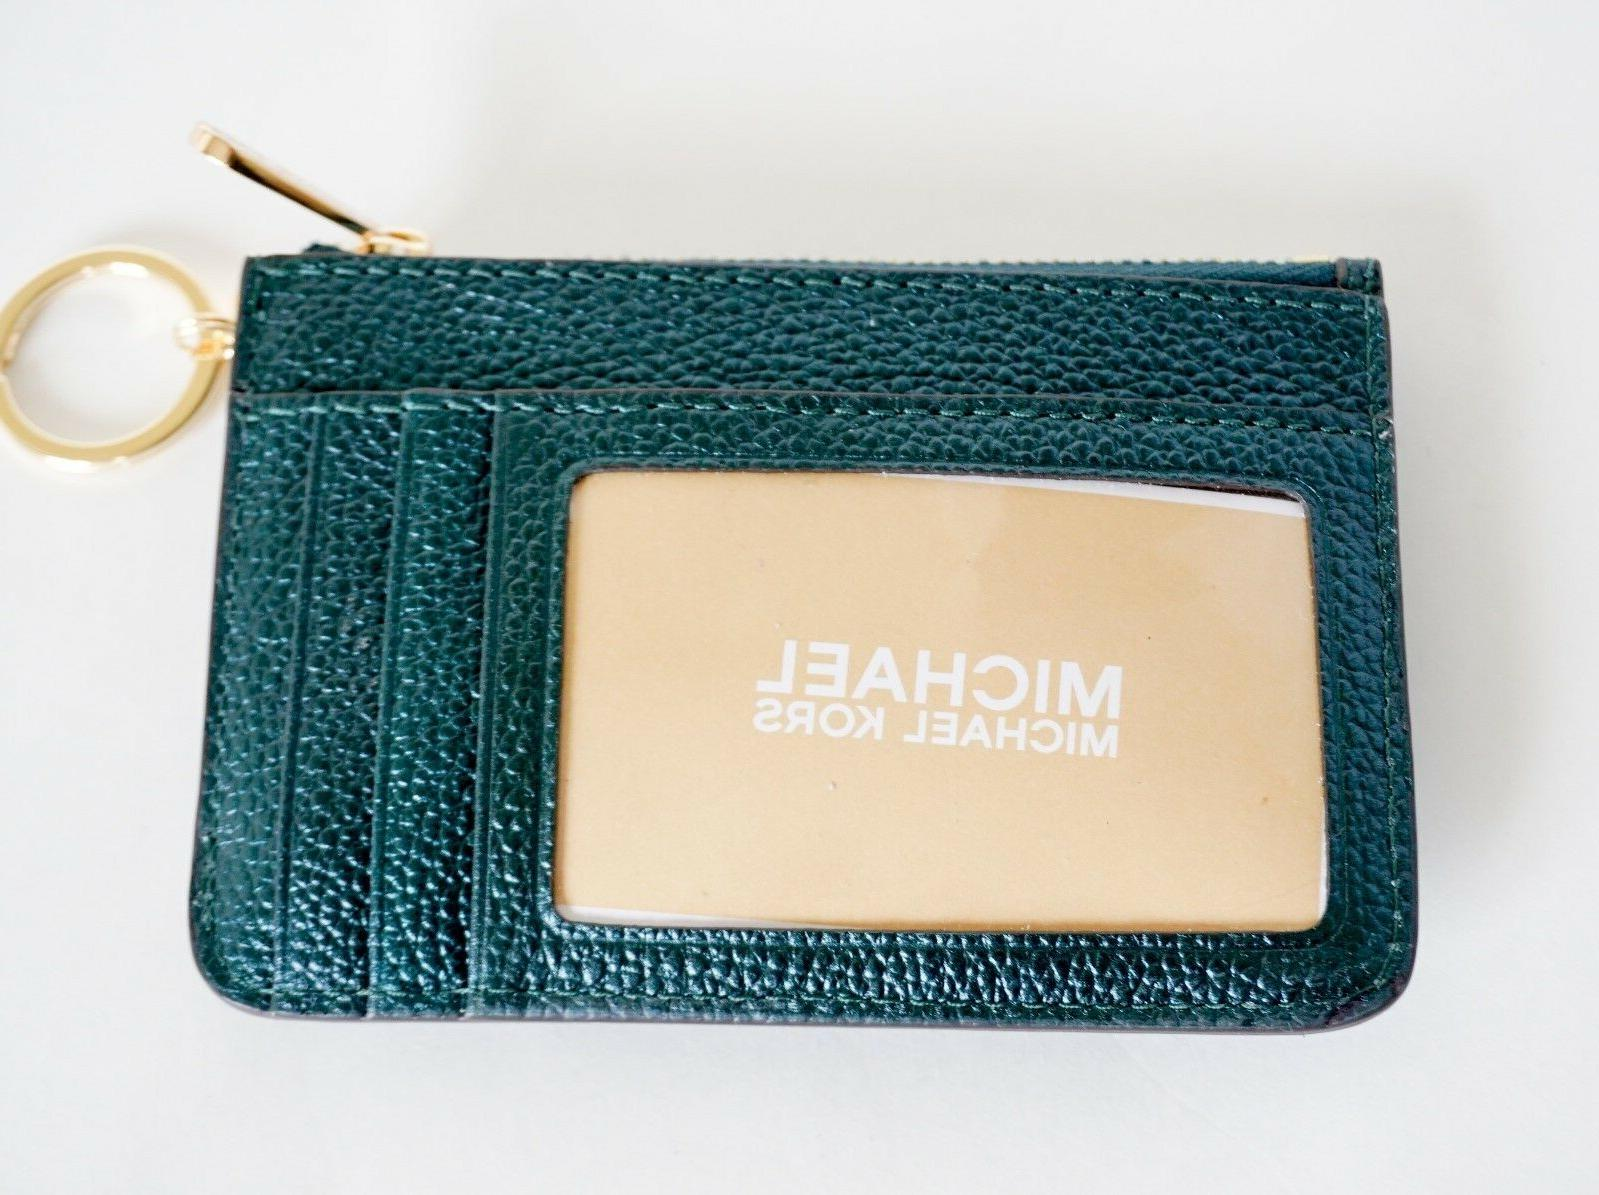 NWT MICHAEL SMALL TOP ZIP COINPOUCH ID KEY RING CARD